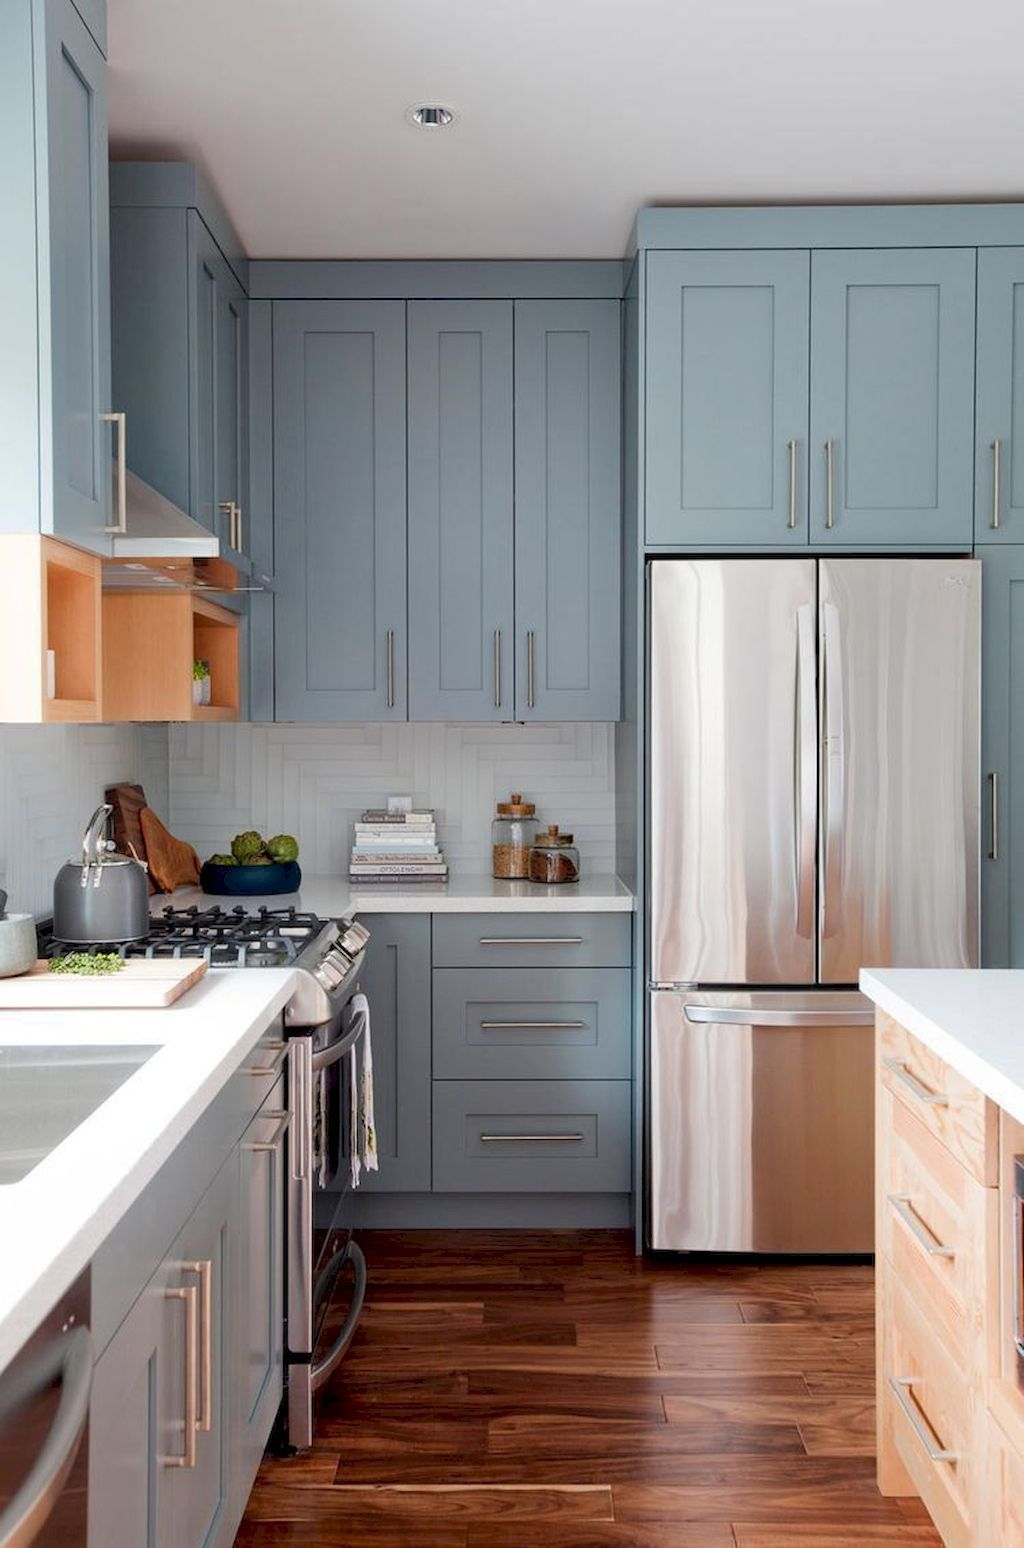 24 Blue Kitchen Cabinet Ideas to Breathe Life into Your ...